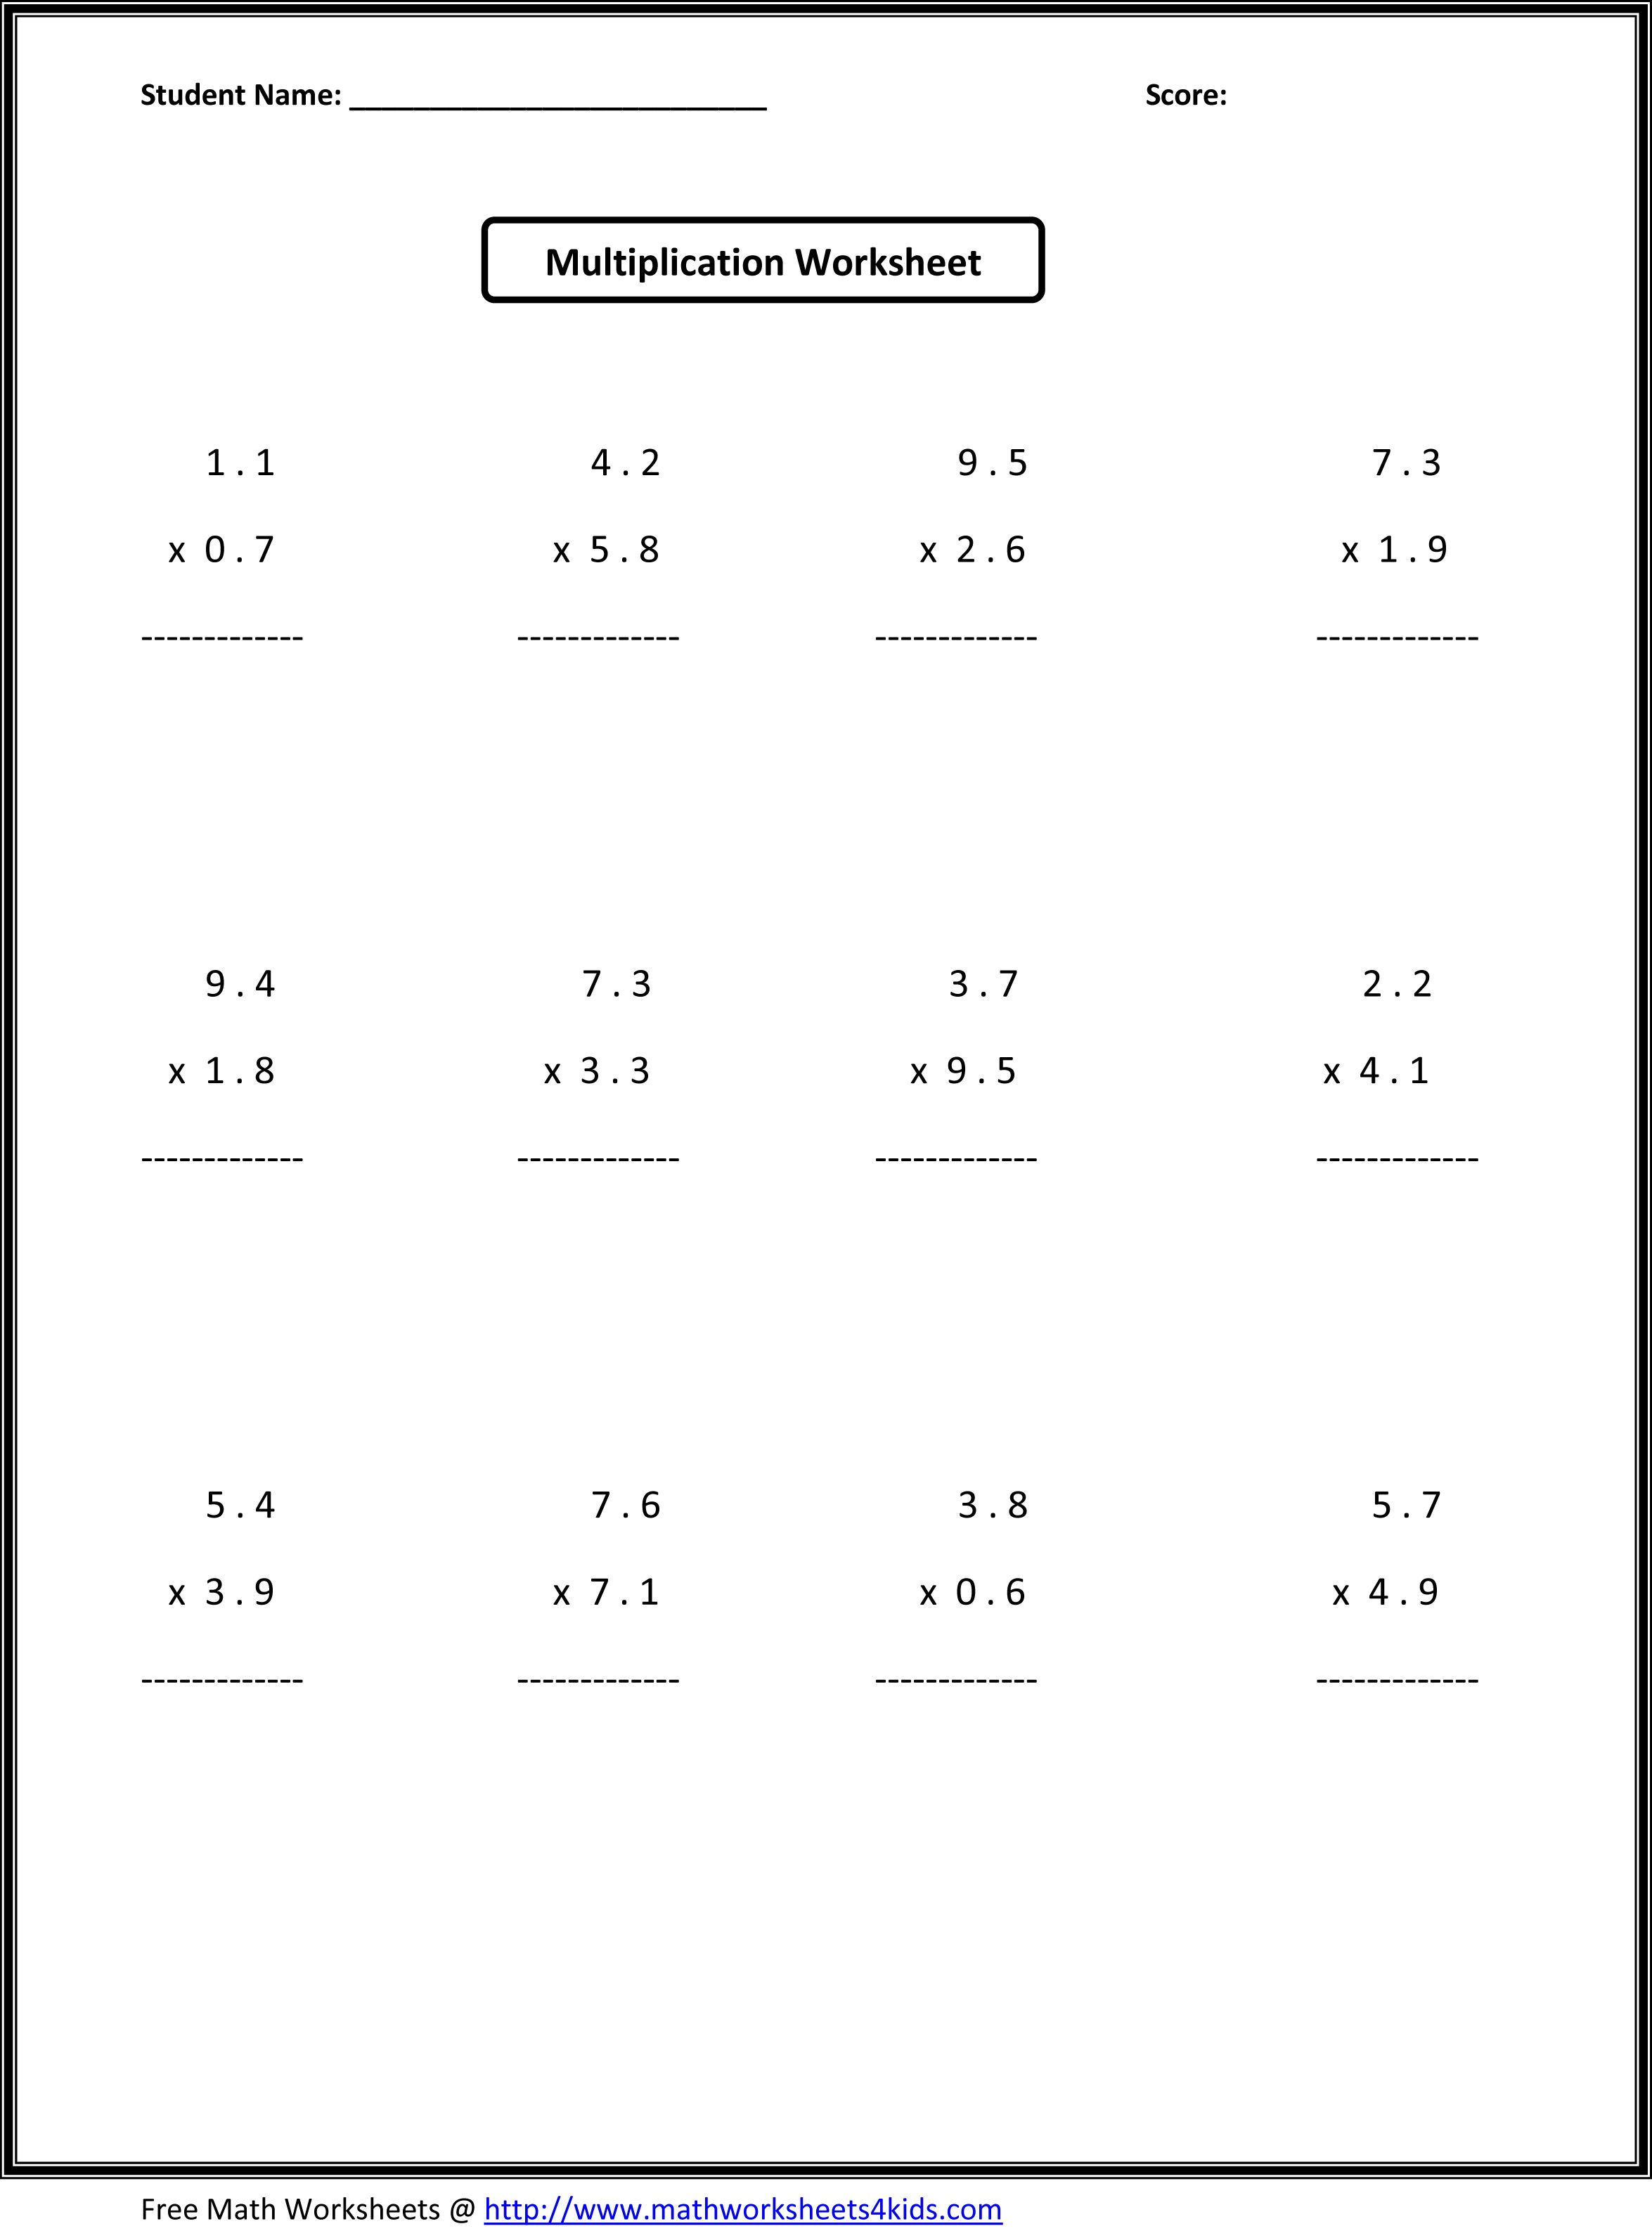 Worksheets 6th Grade Math Worksheets With Answer Key 7th grade math worksheets value absolute sixth have ratio multiplying and dividing fractions